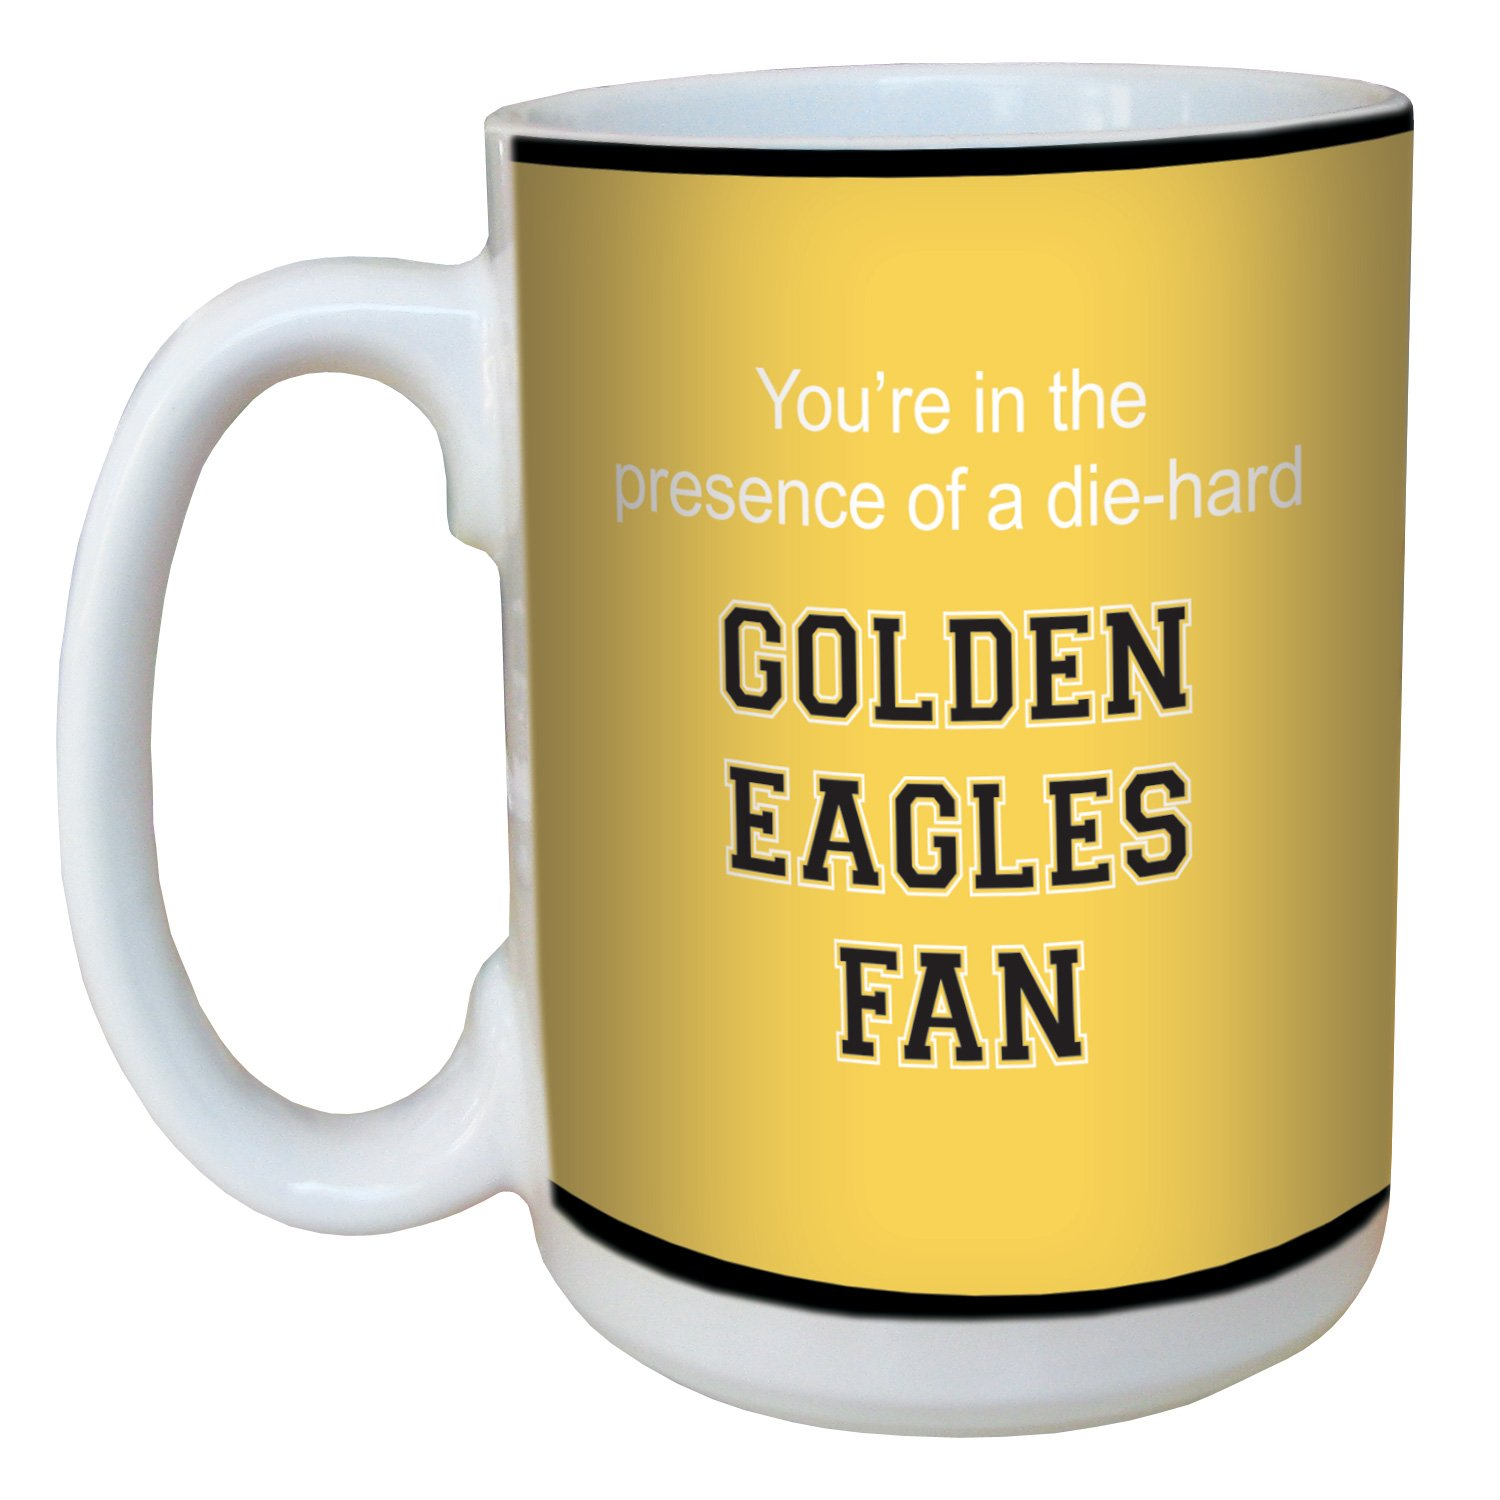 Tree-Free Greetings lm44562 Golden Eagles College Football Fan Ceramic Mug with Full-Sized Handle 15-Ounce